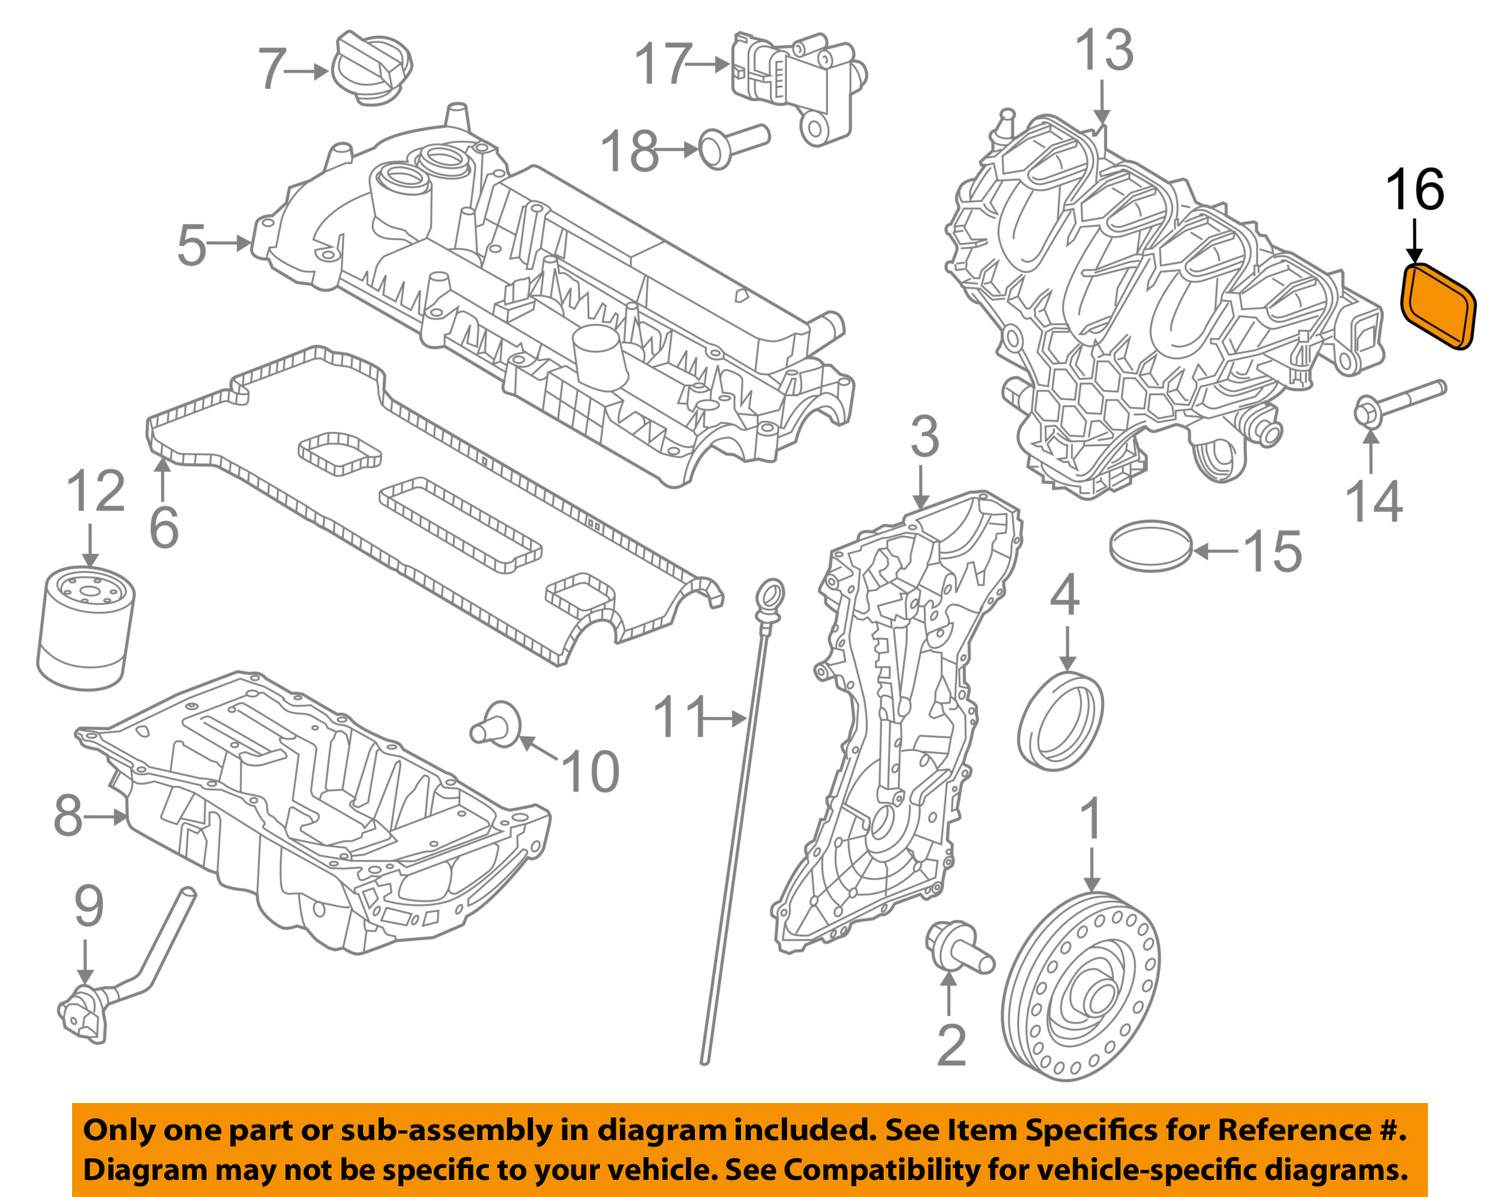 range rover evoque engine diagram range auto wiring diagram land rover oem 12 16 range rover evoque engine intake manifold on range rover evoque engine